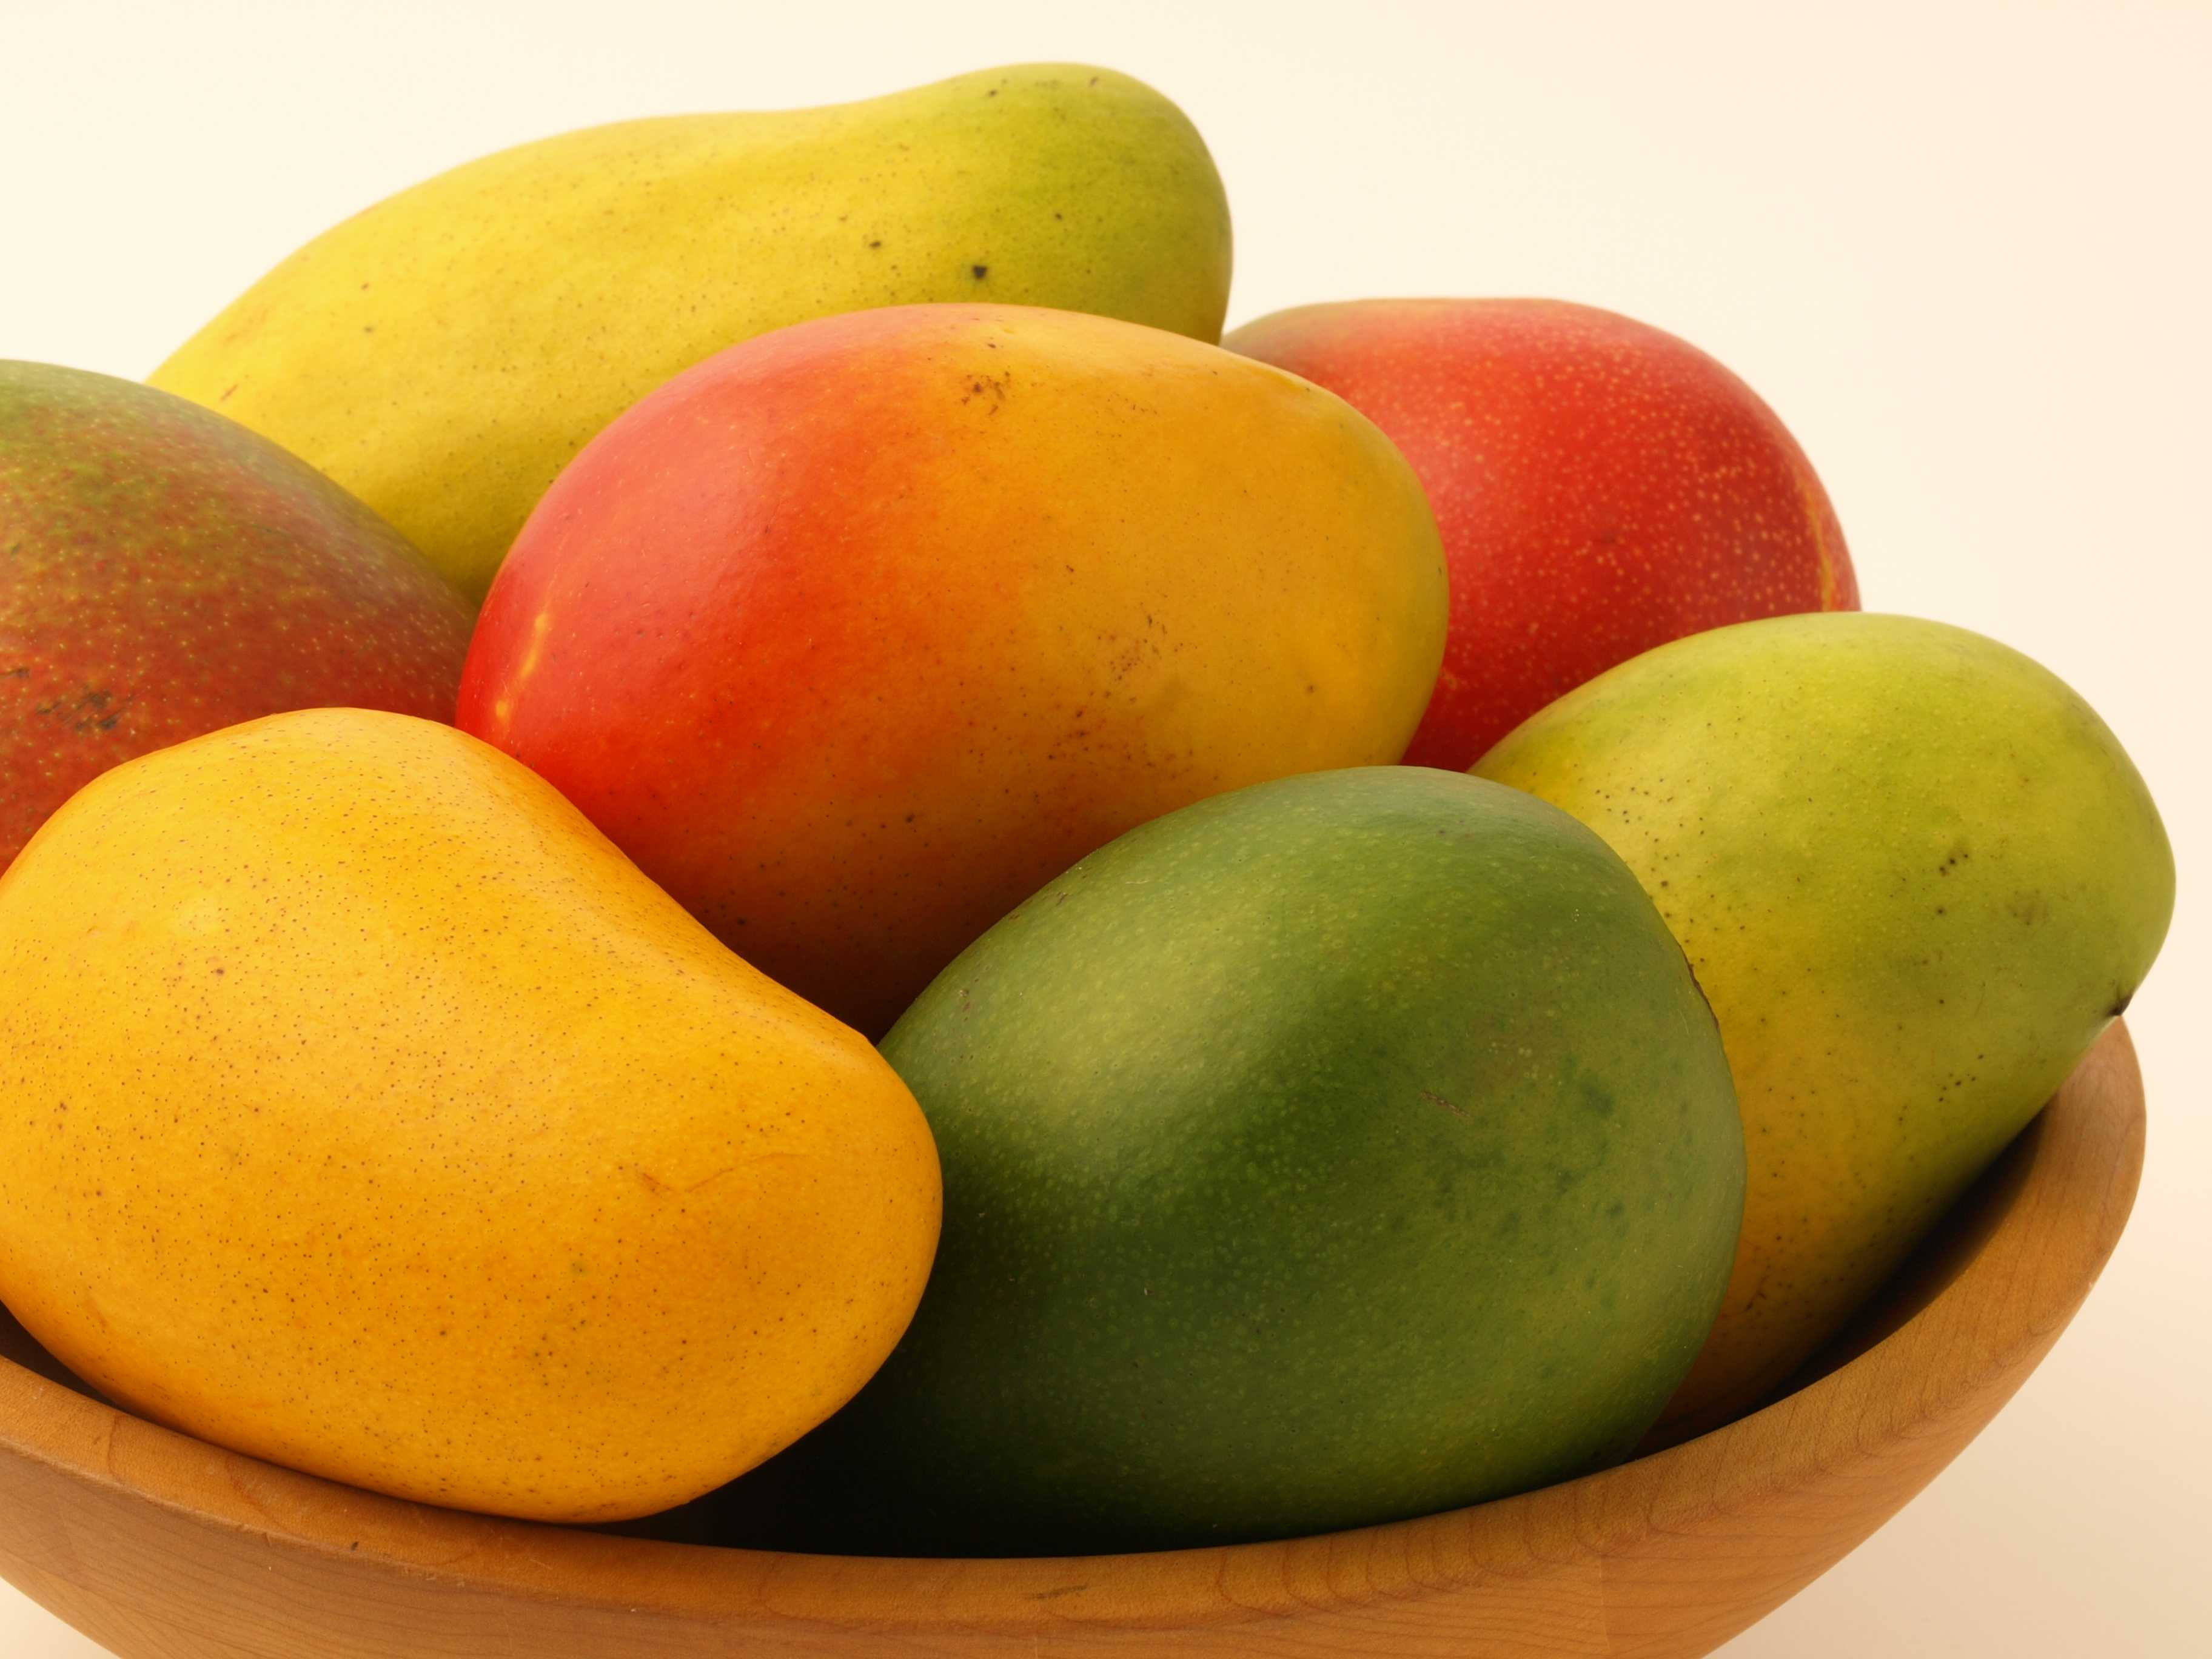 Ripe and Unripe Mango Fruits in a Bowl 2107.57 Kb